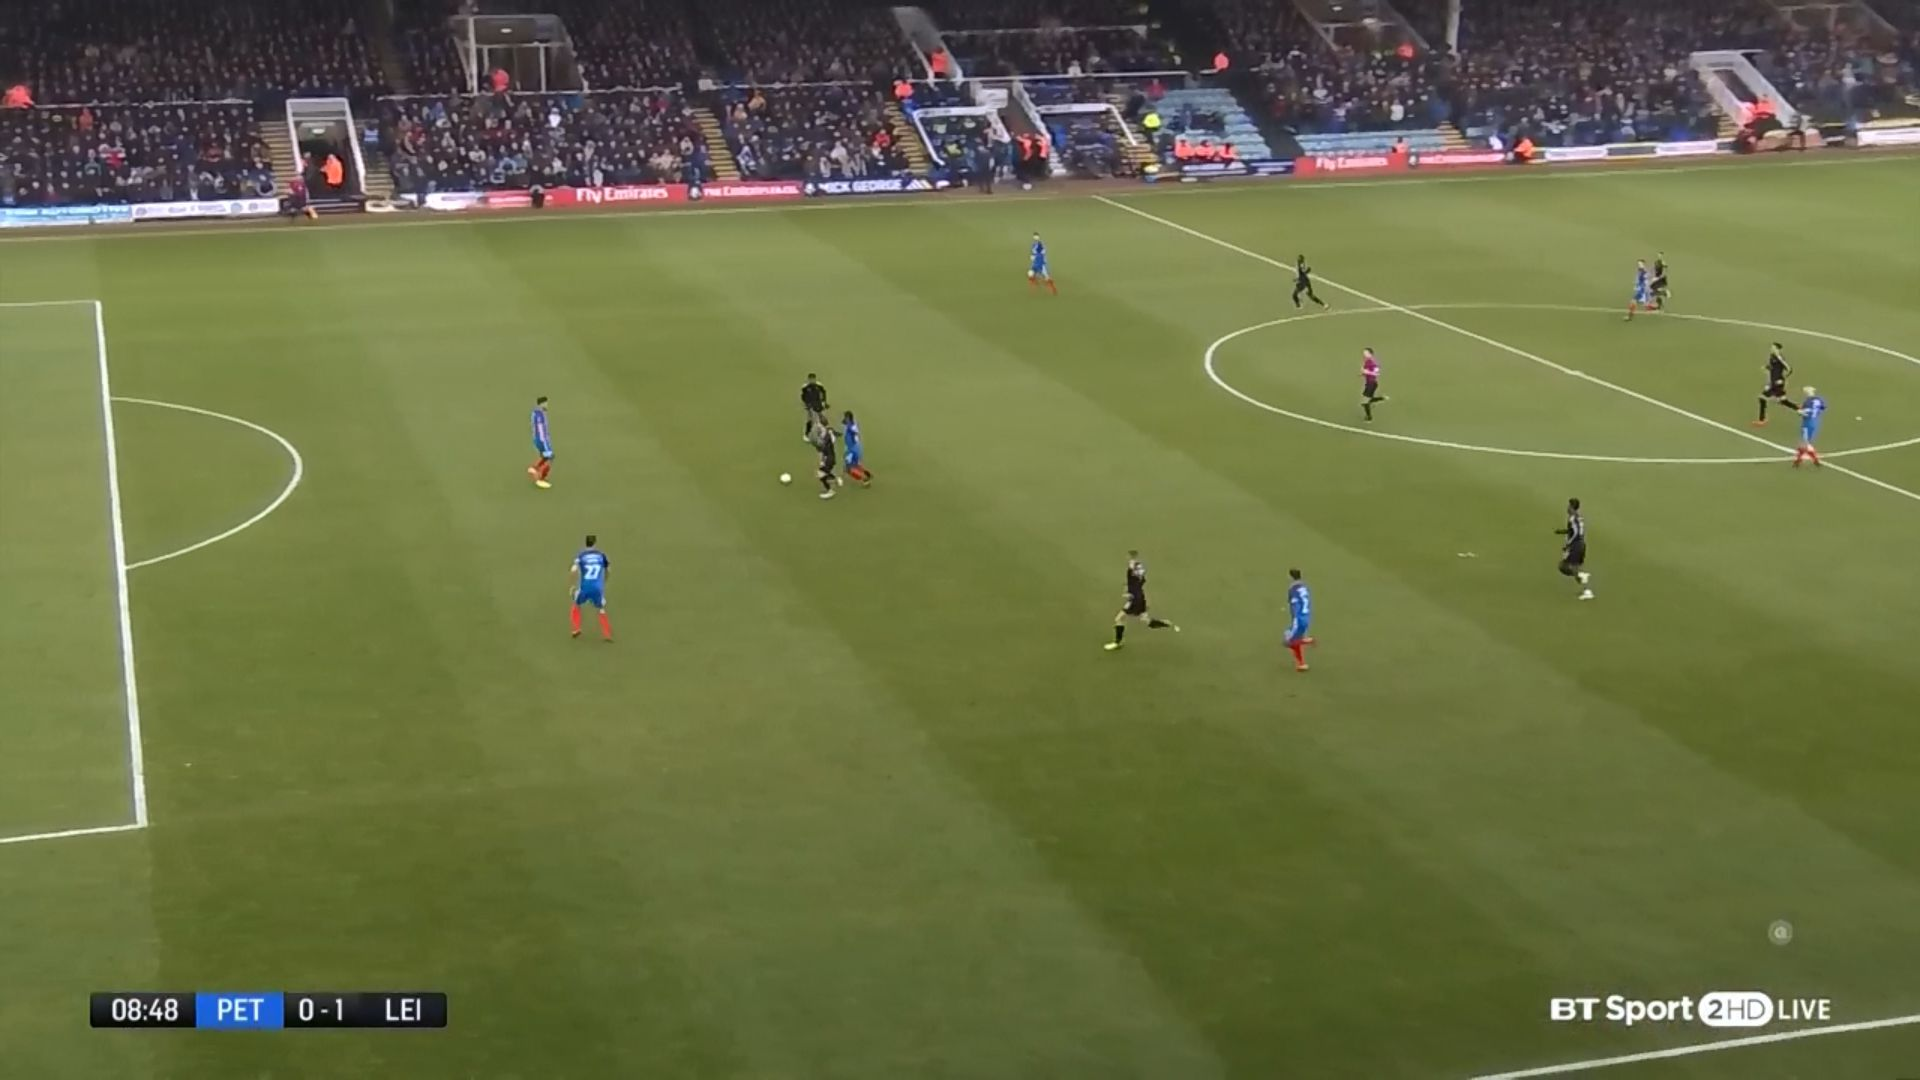 27-01-2018 - Peterborough United 1-5 Leicester City (FA CUP)